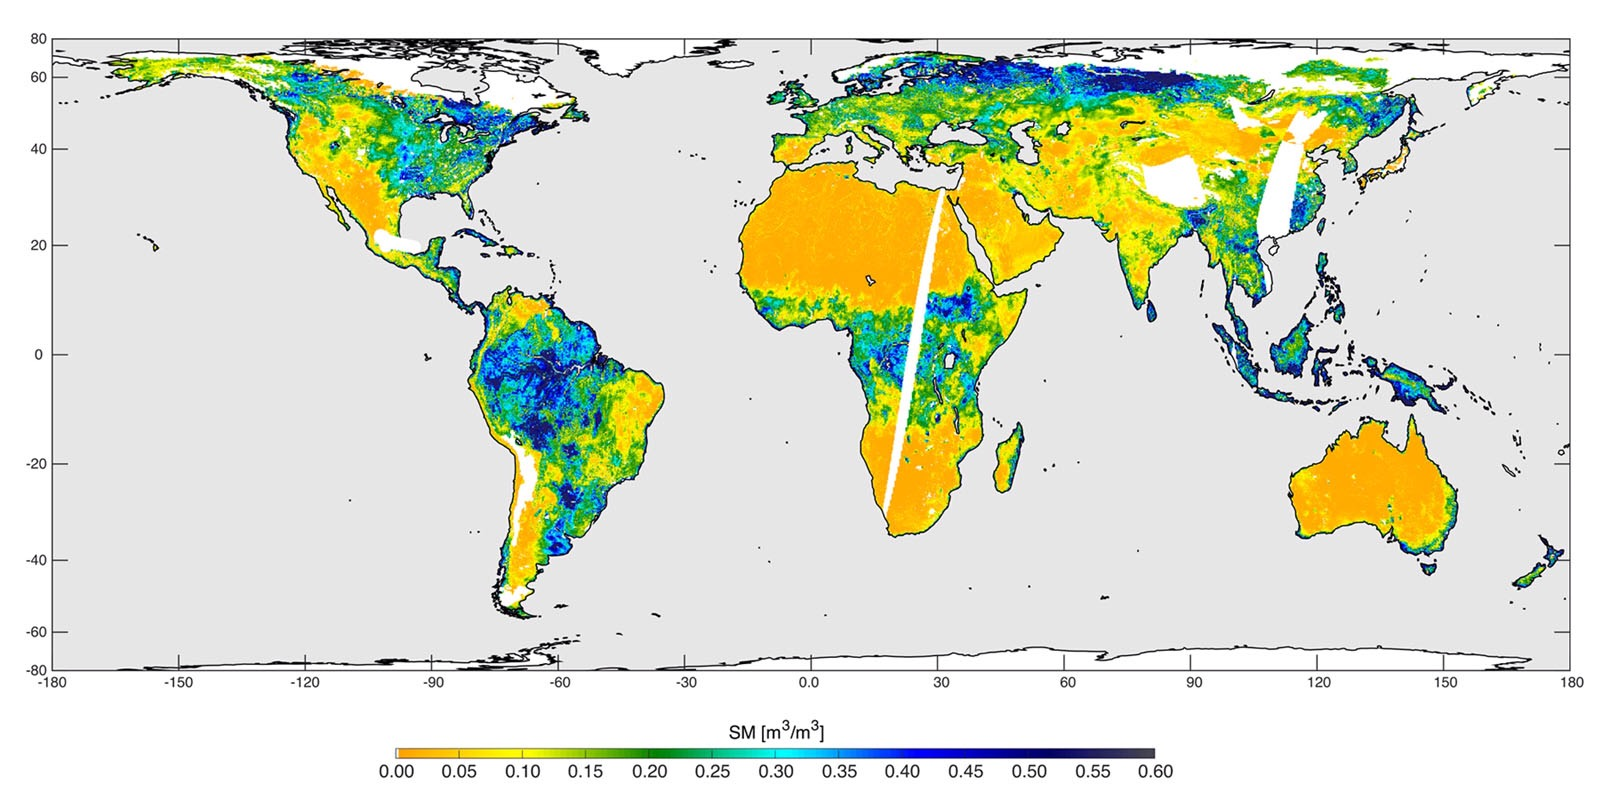 high resolution global soil moisture map from smap s combined radar and radiometer instruments southern u s smap soil moisture retrievals from april 27